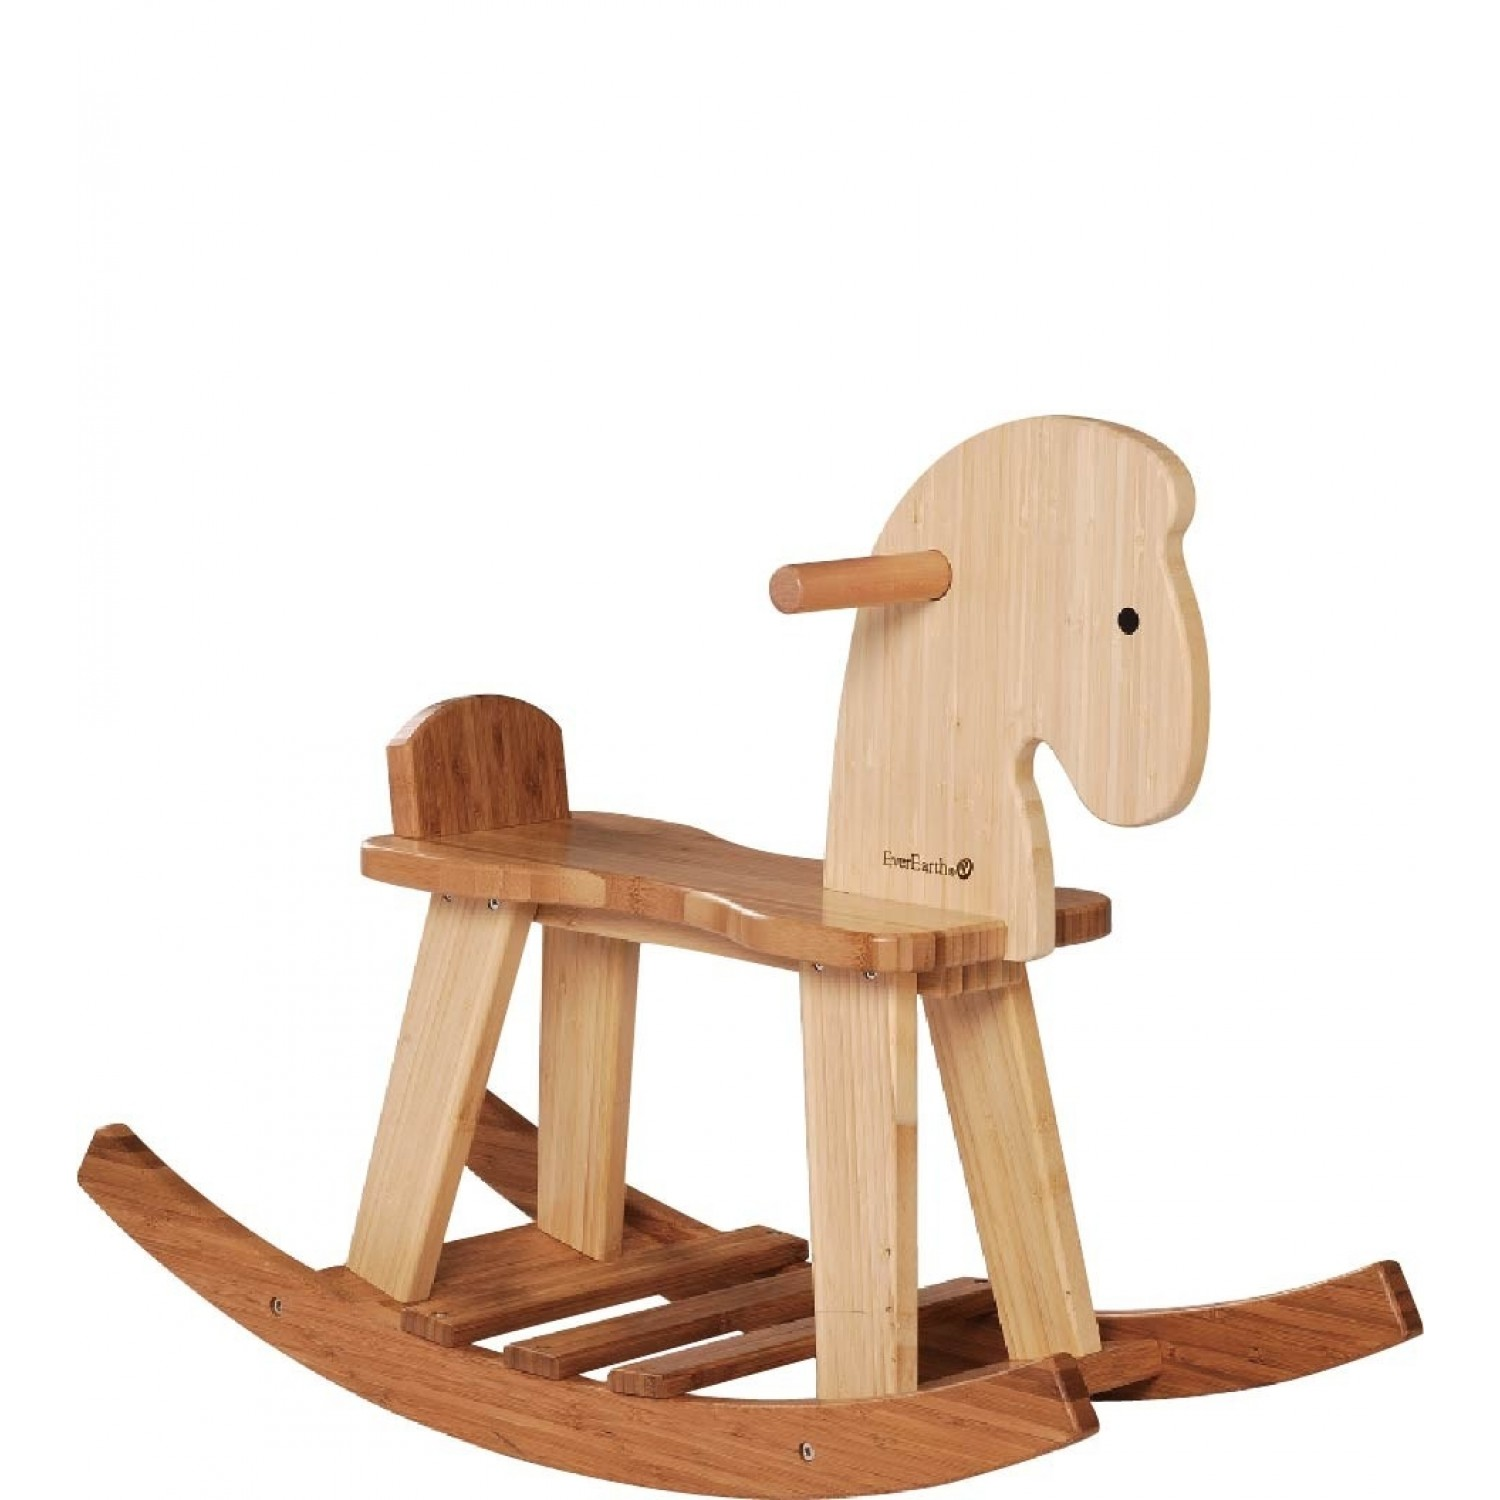 Eco wood rocking horse made of FSC® Wood | EverEarth®